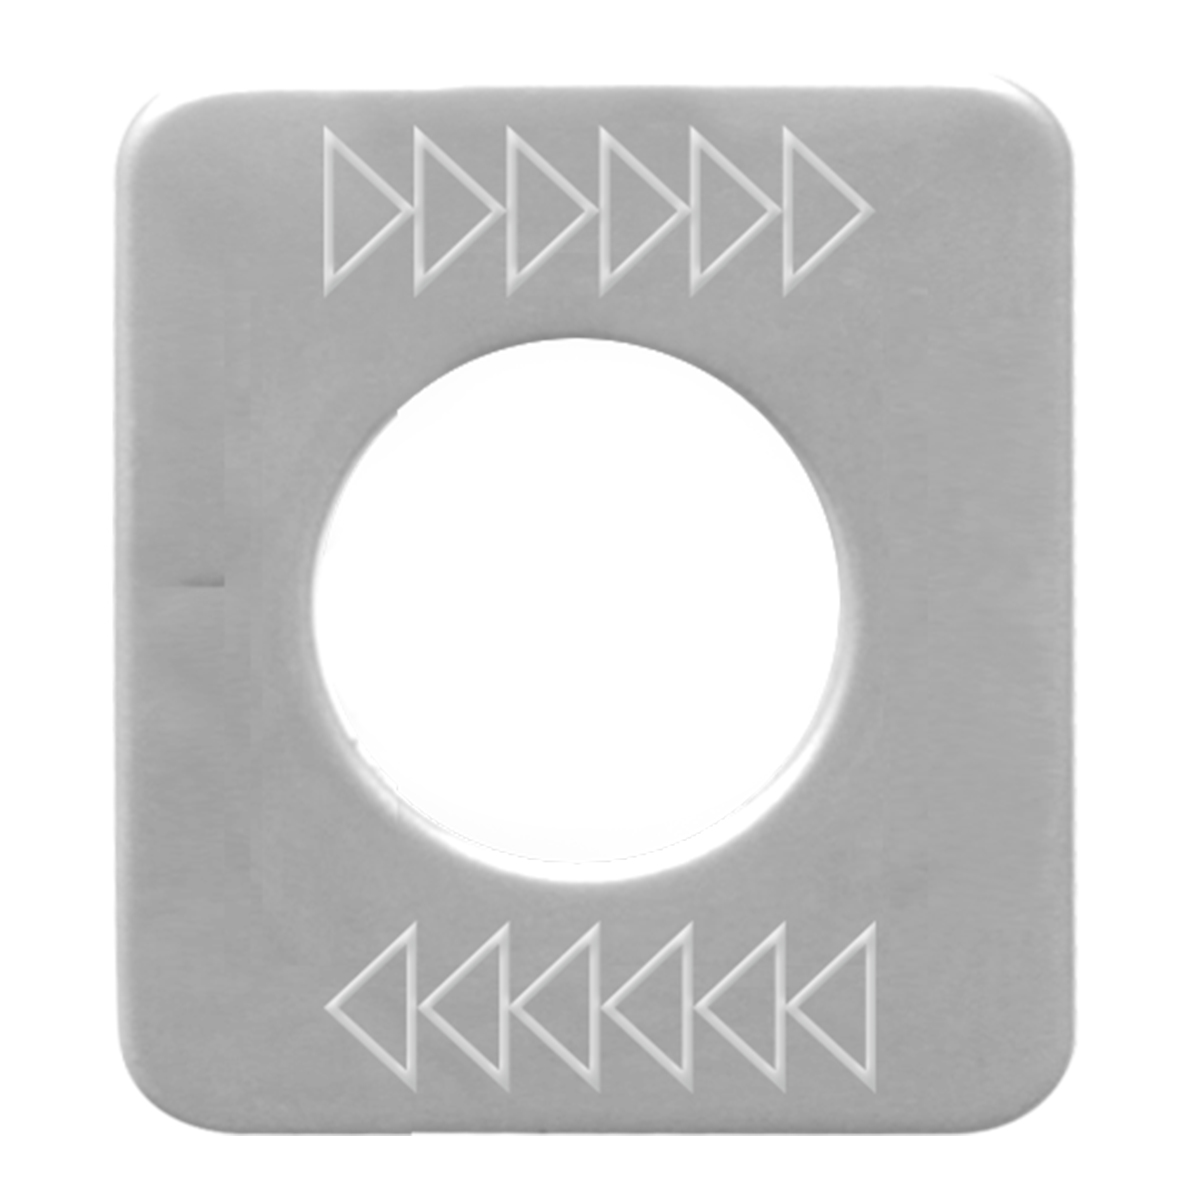 68597 Stainless Steel Right Top Arrow Switch Plate for KW